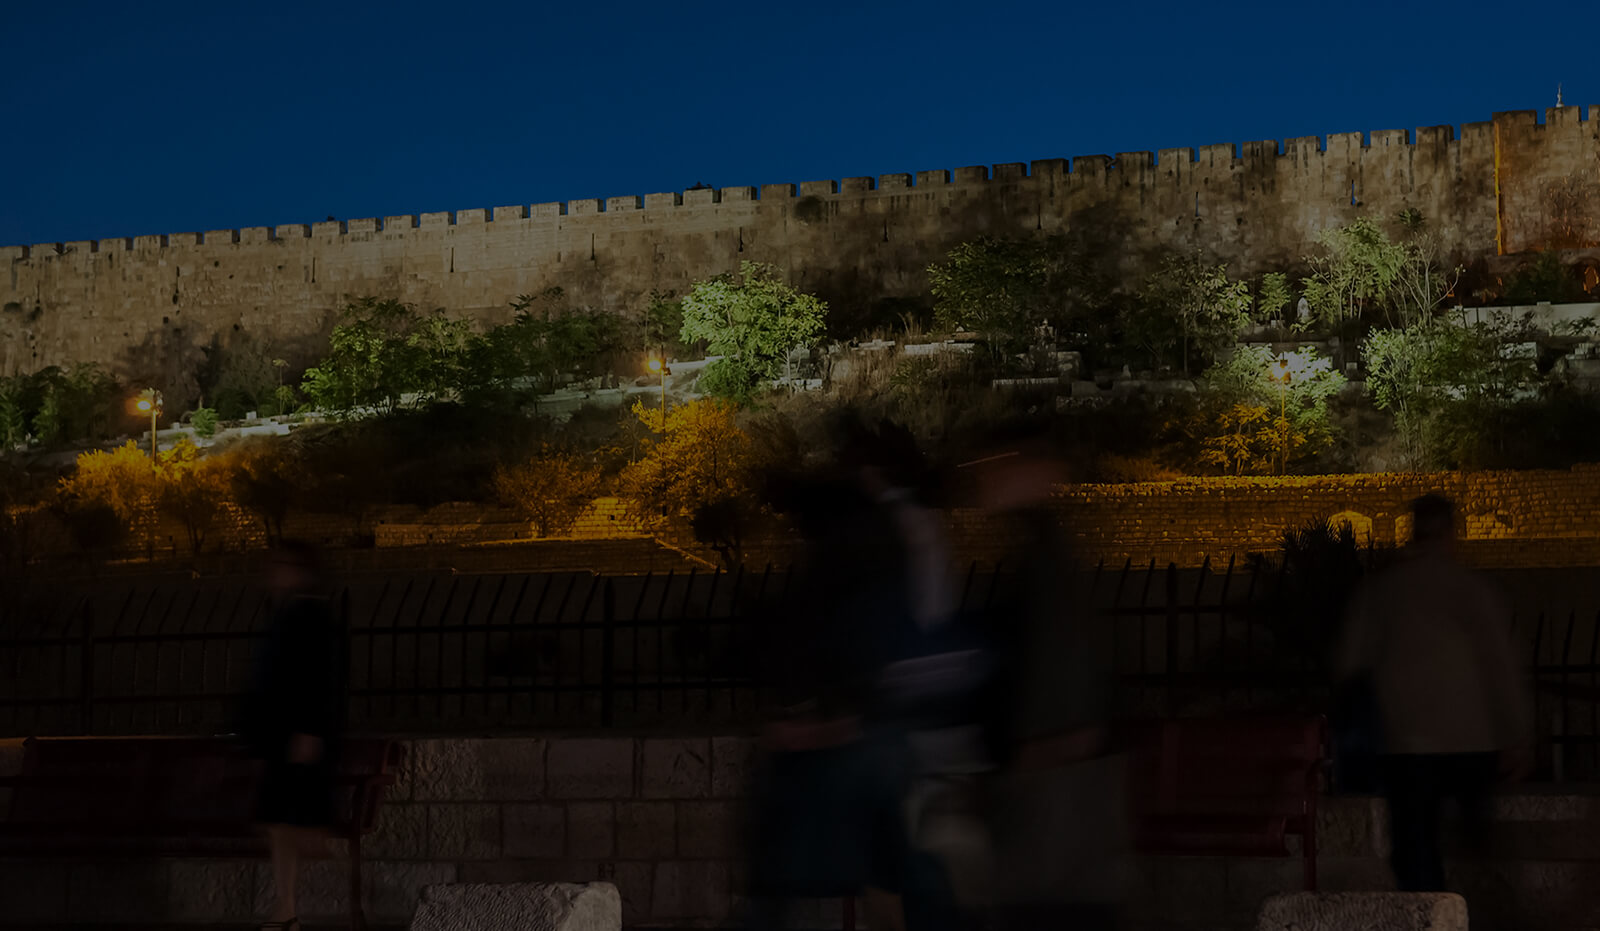 Dark Page Header: Jerusalem City Walls